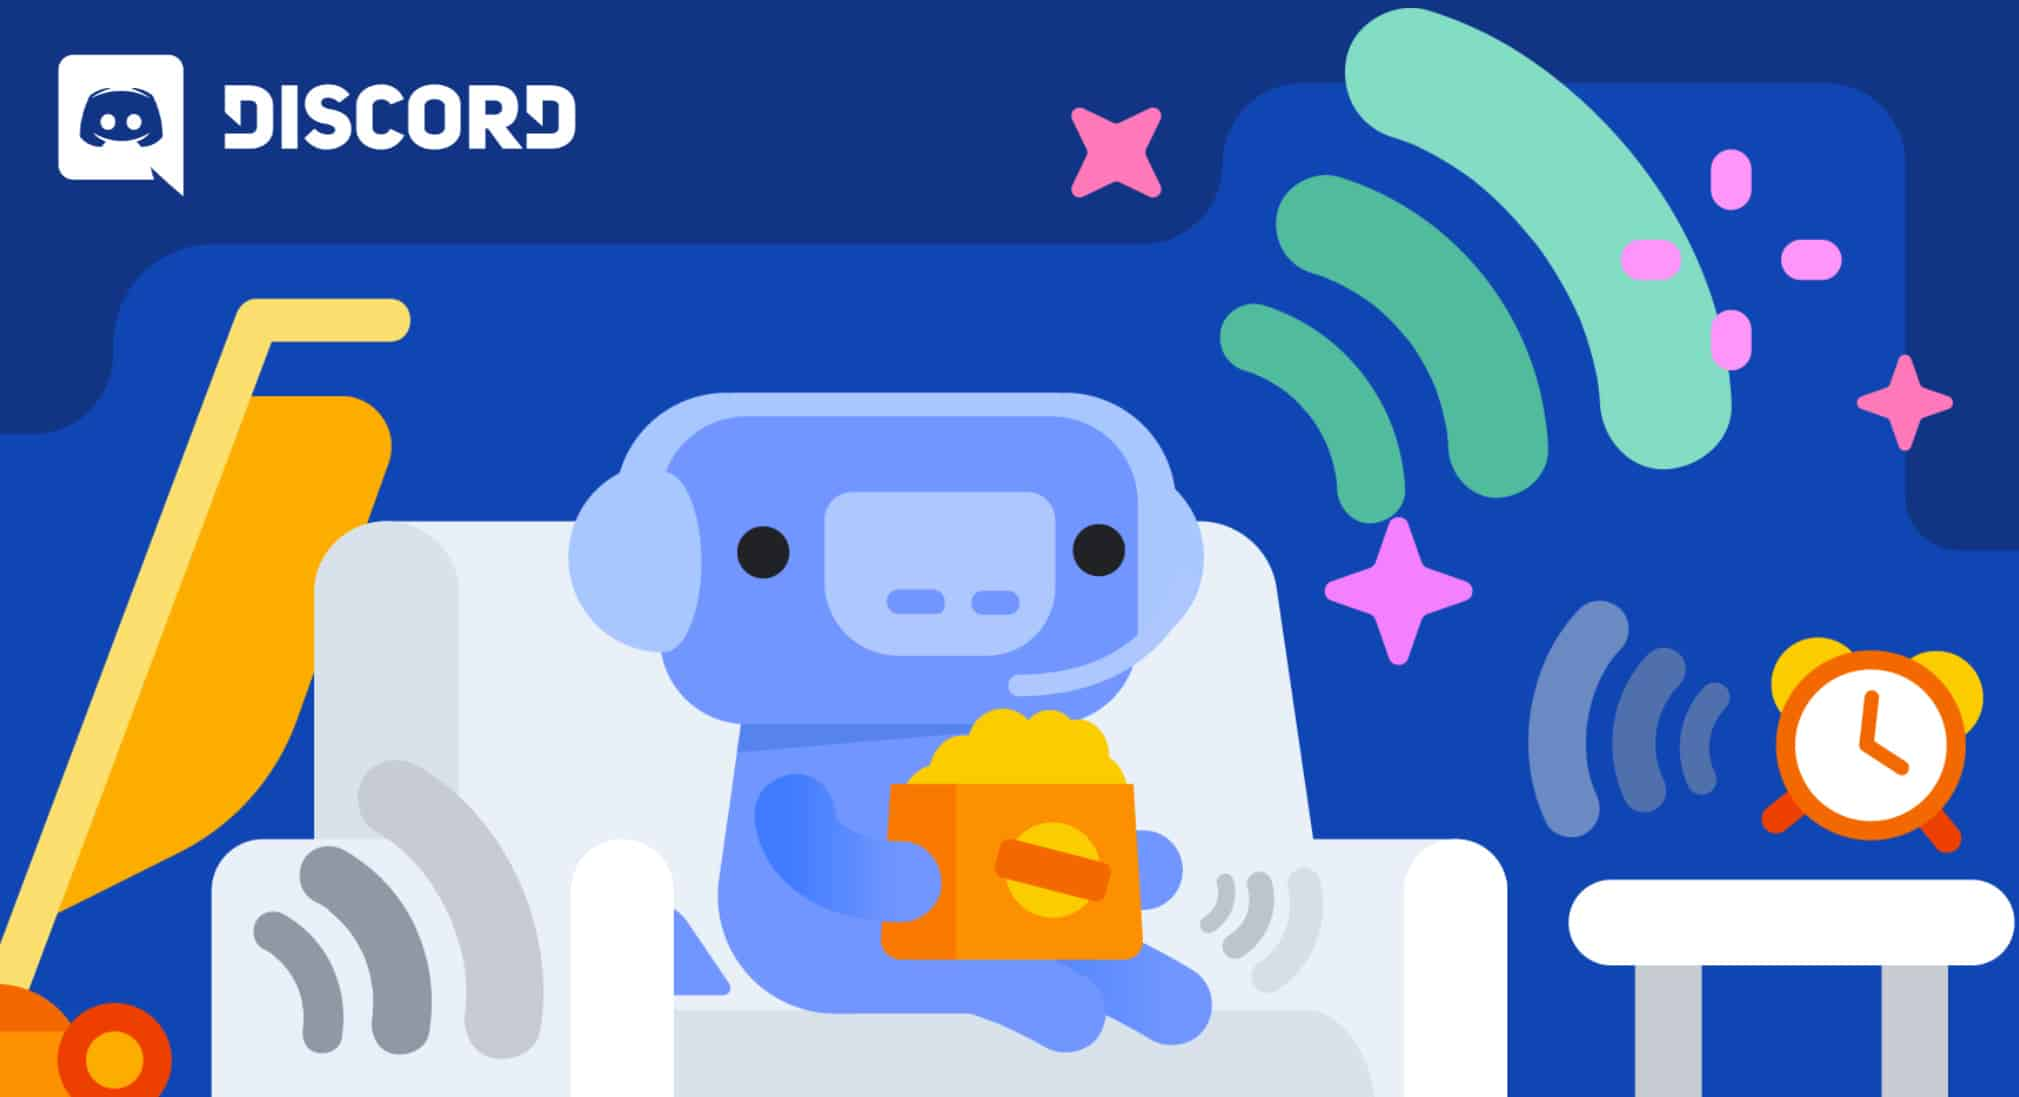 Discord no longer wants to sell due to increased success